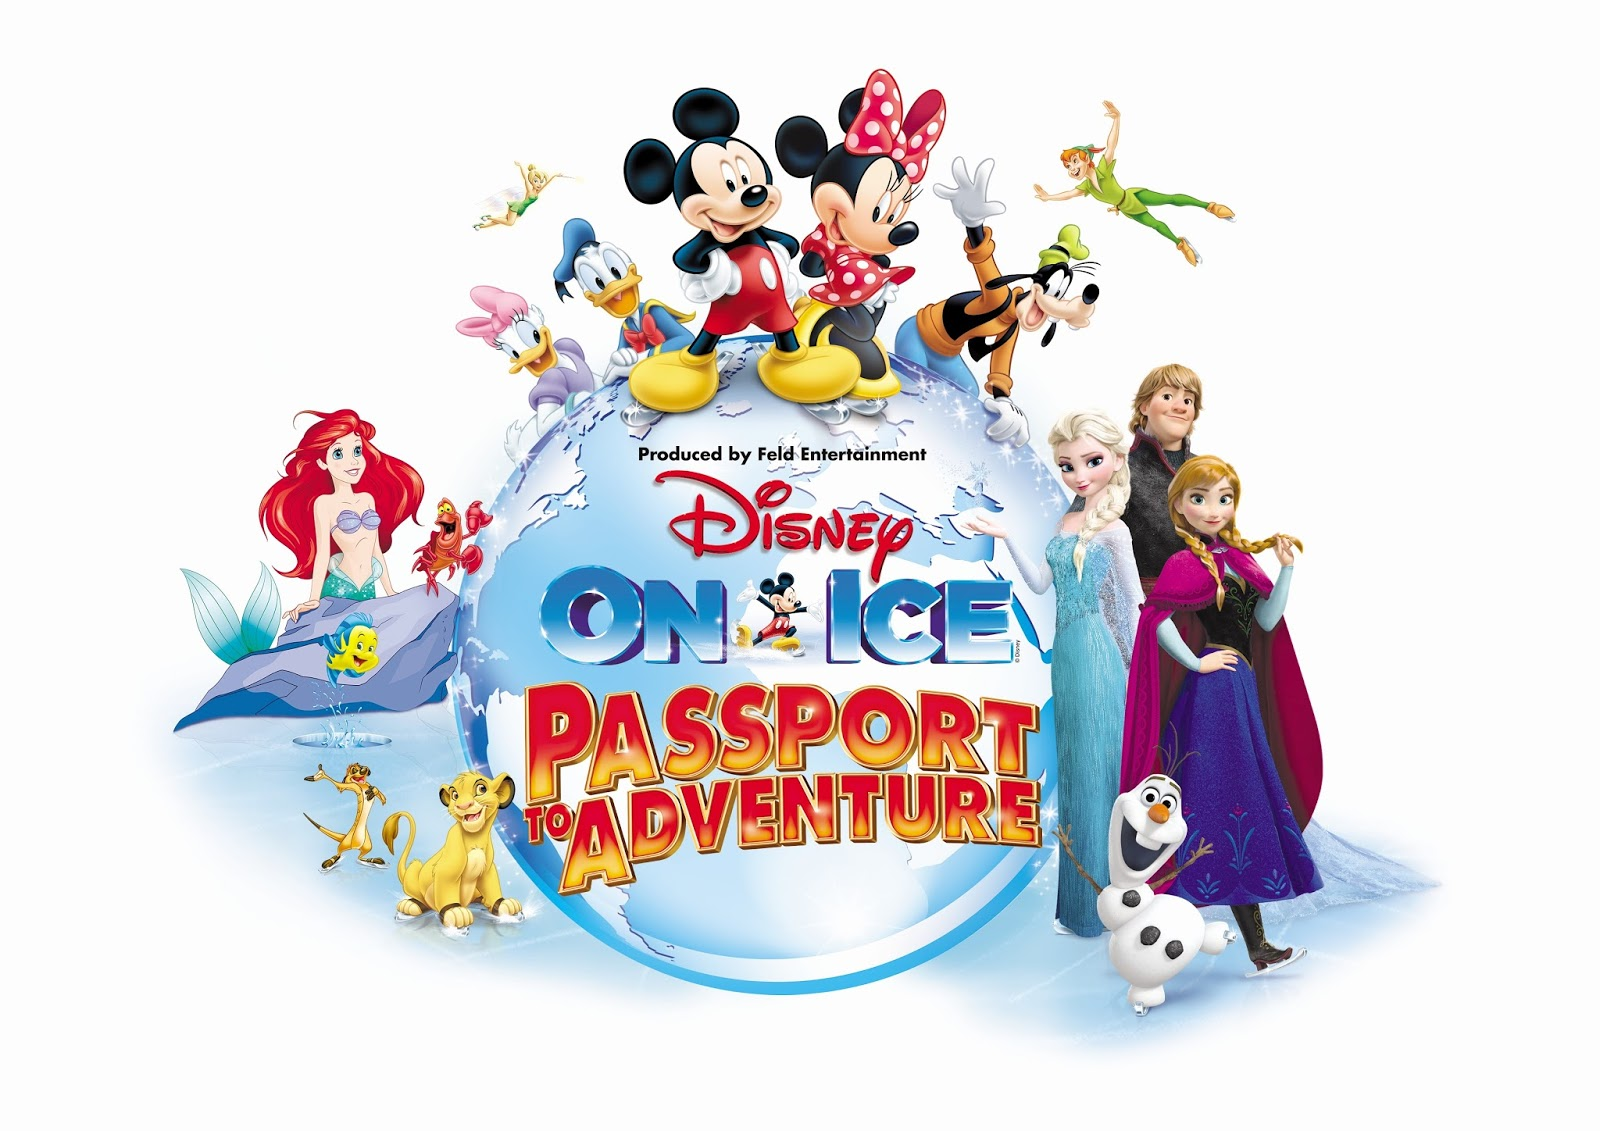 Why Heidi can't wait to watch The Little Mermaid in this year's Disney on Ice presents Passport to Adventure